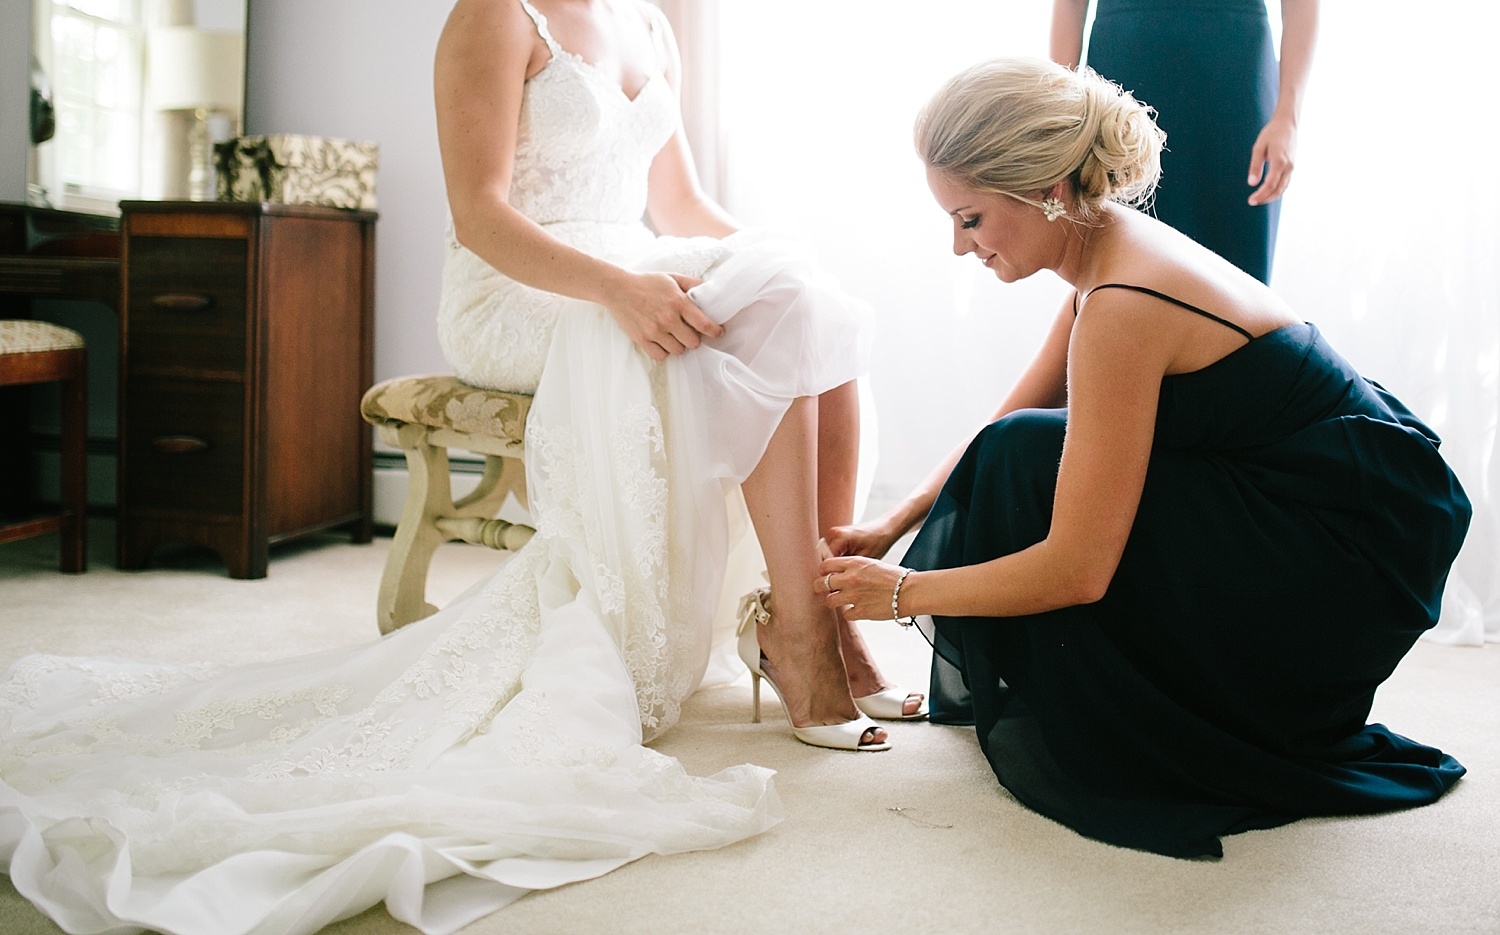 emilyandjoe_bluebell_countryclub_philadelphia_wedding_image030.jpg